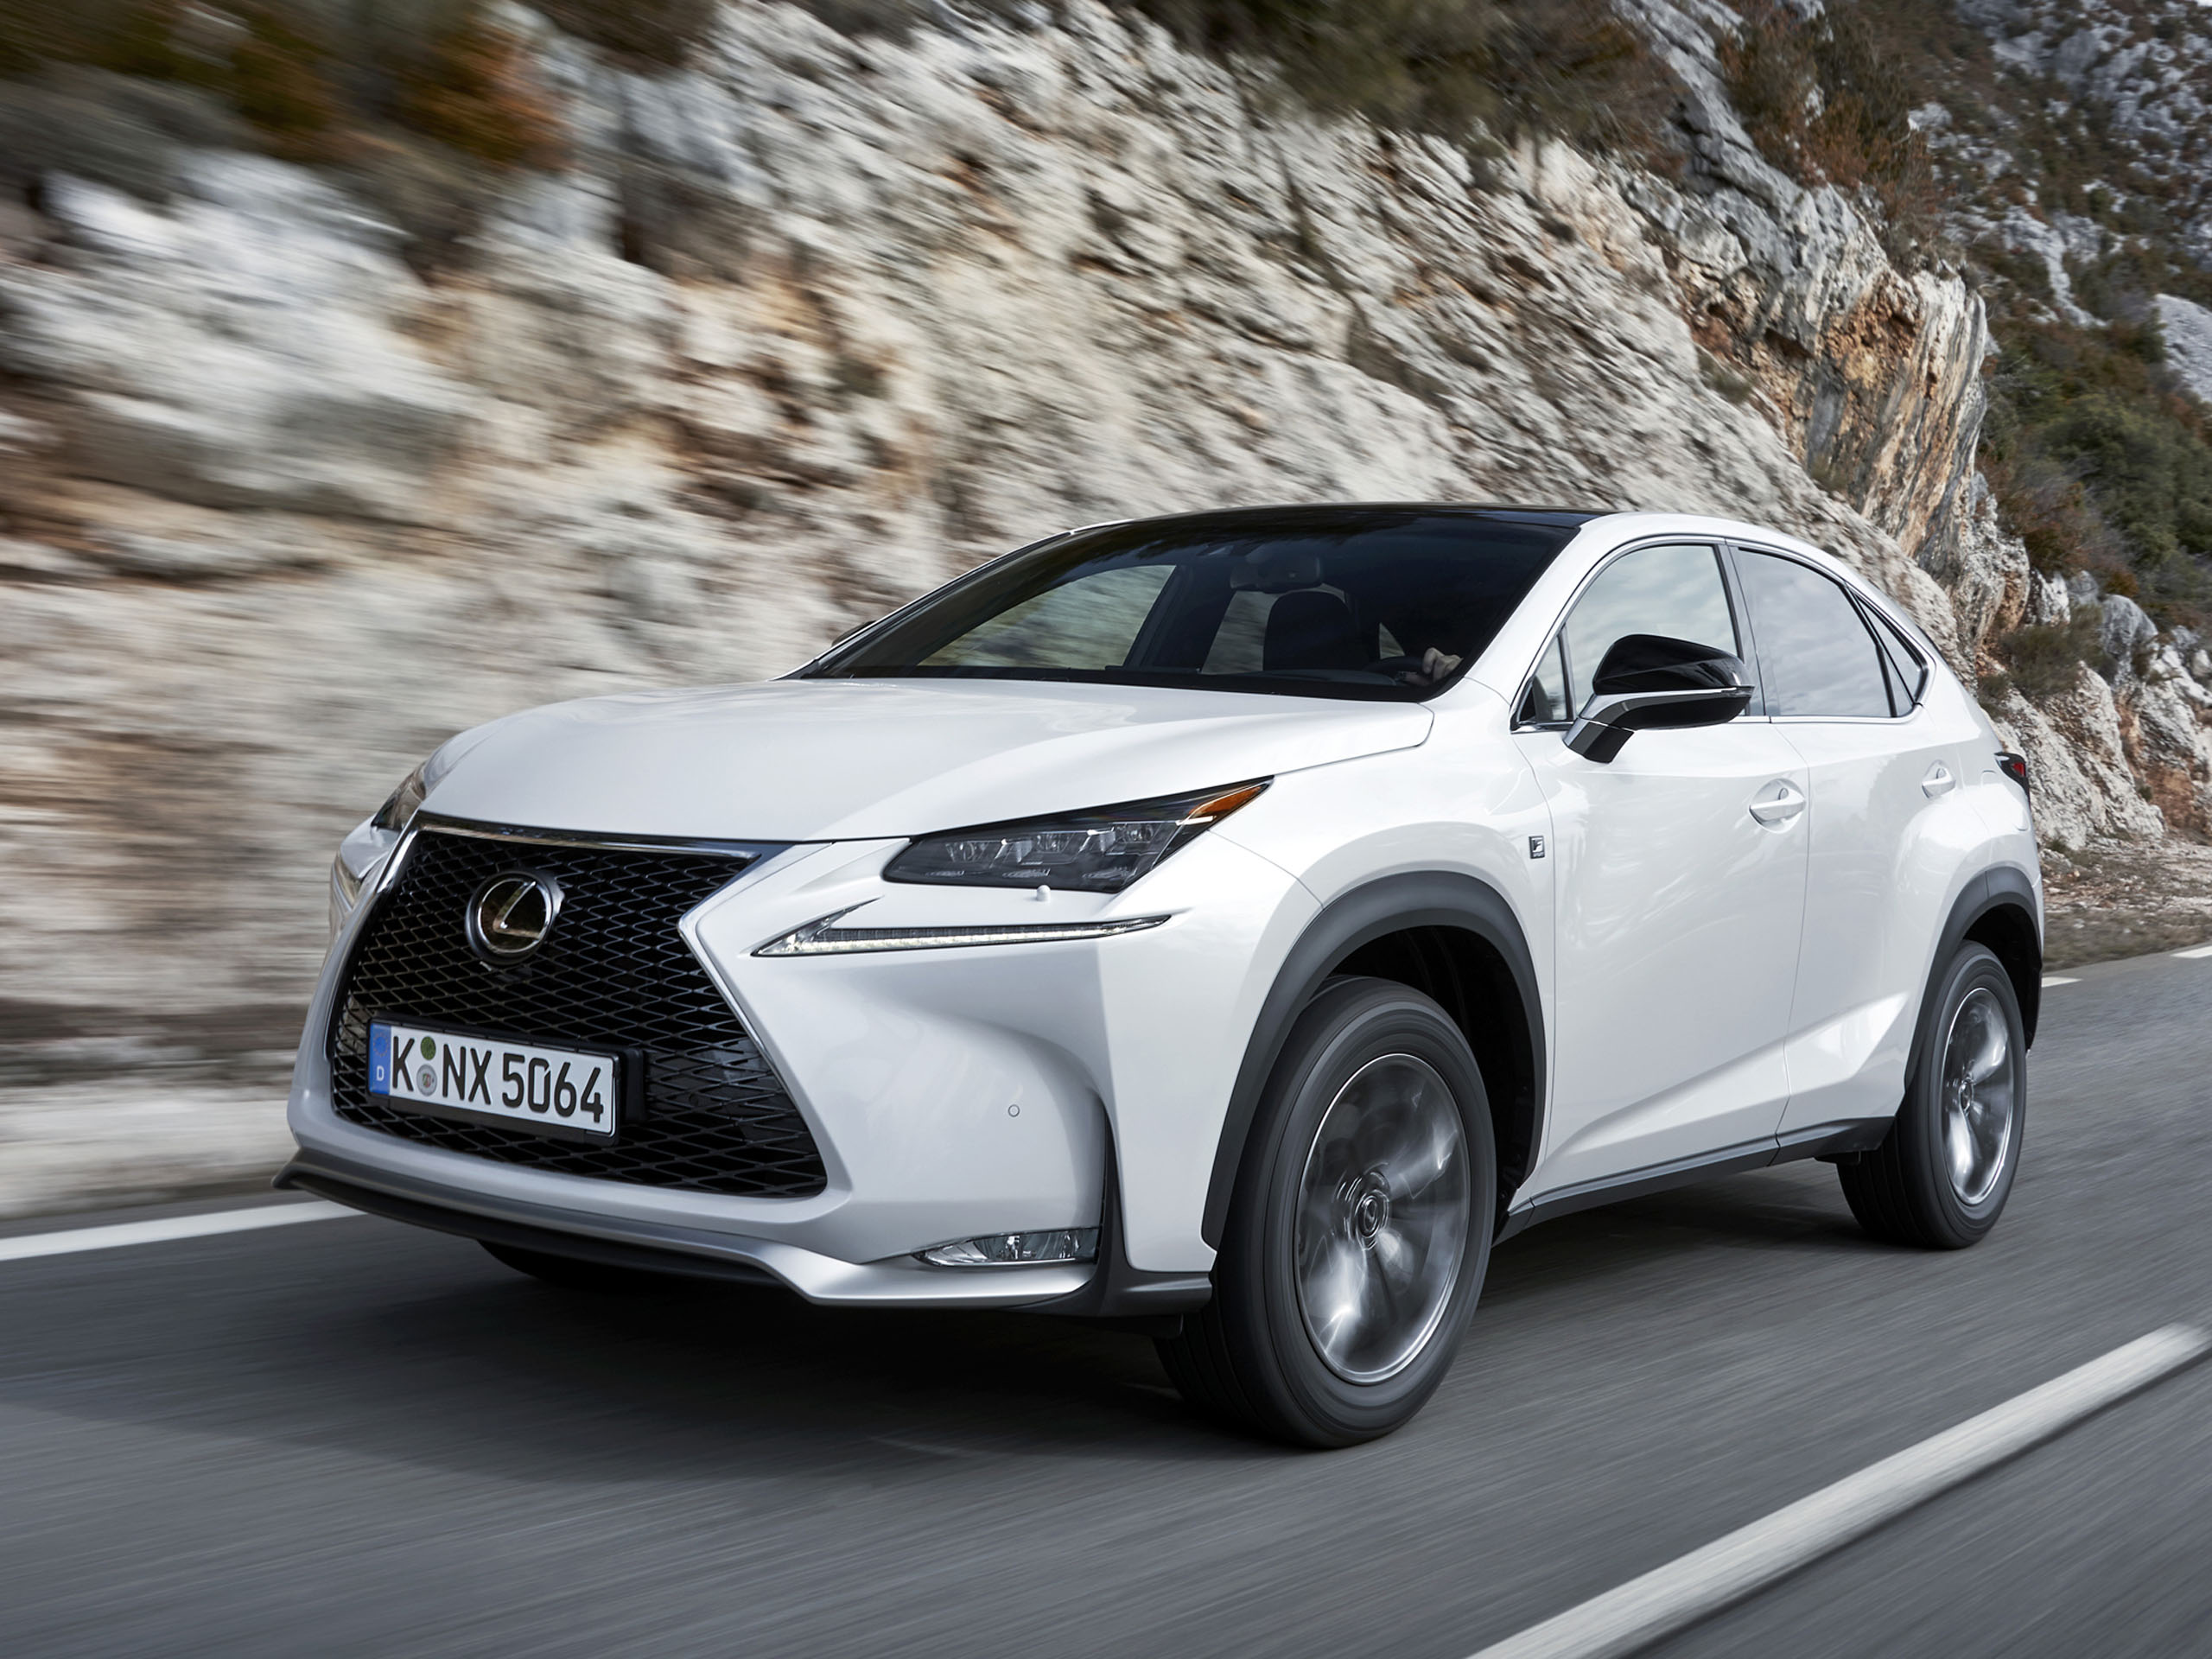 2020 Lexus NX 200t Concept and Review